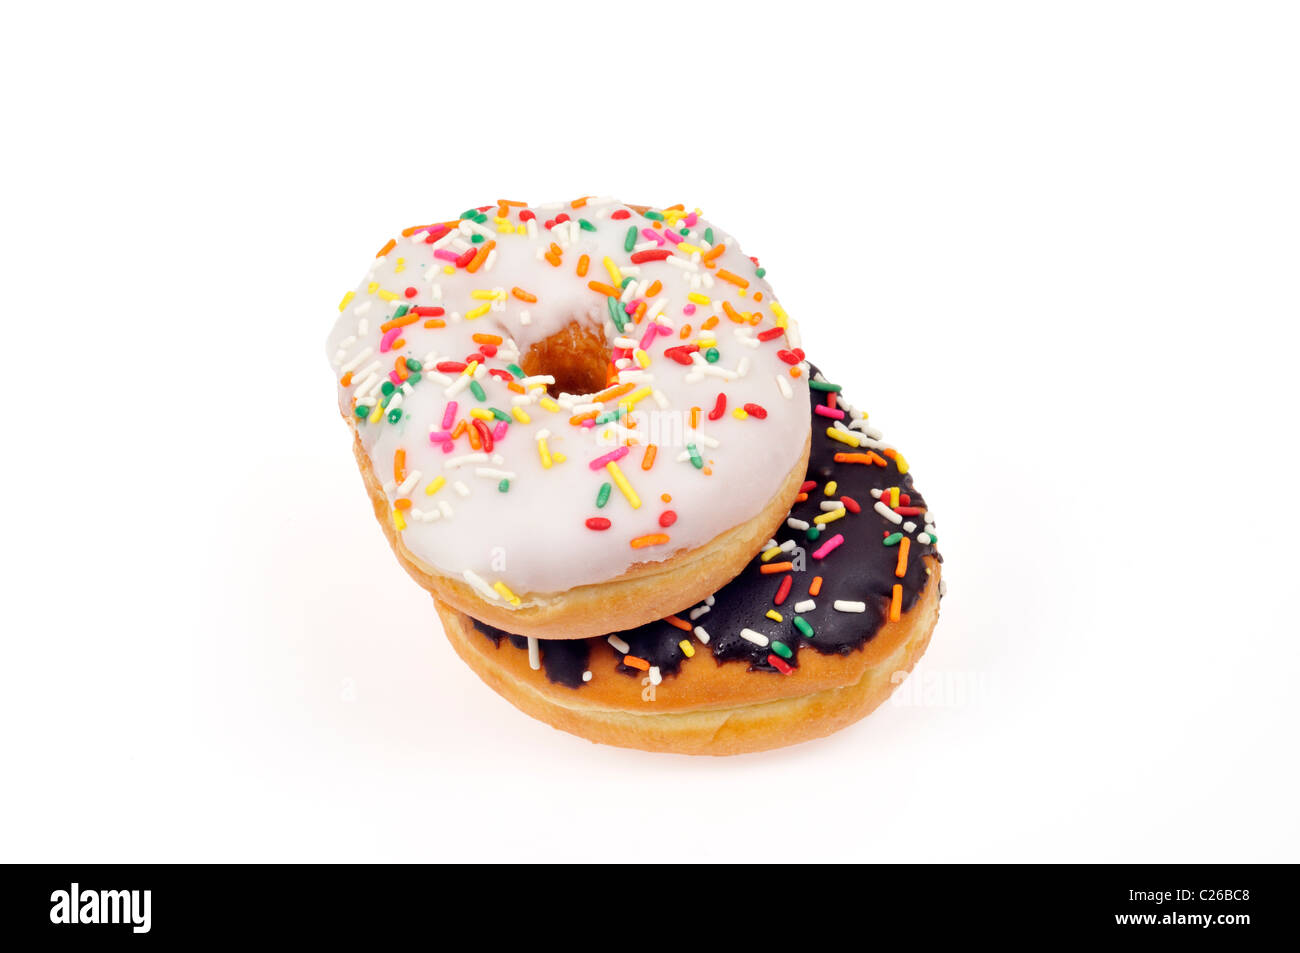 Vanilla frosted doughnut and chocolate frosted donut with colorful sprinkles on white background, cut out. - Stock Image